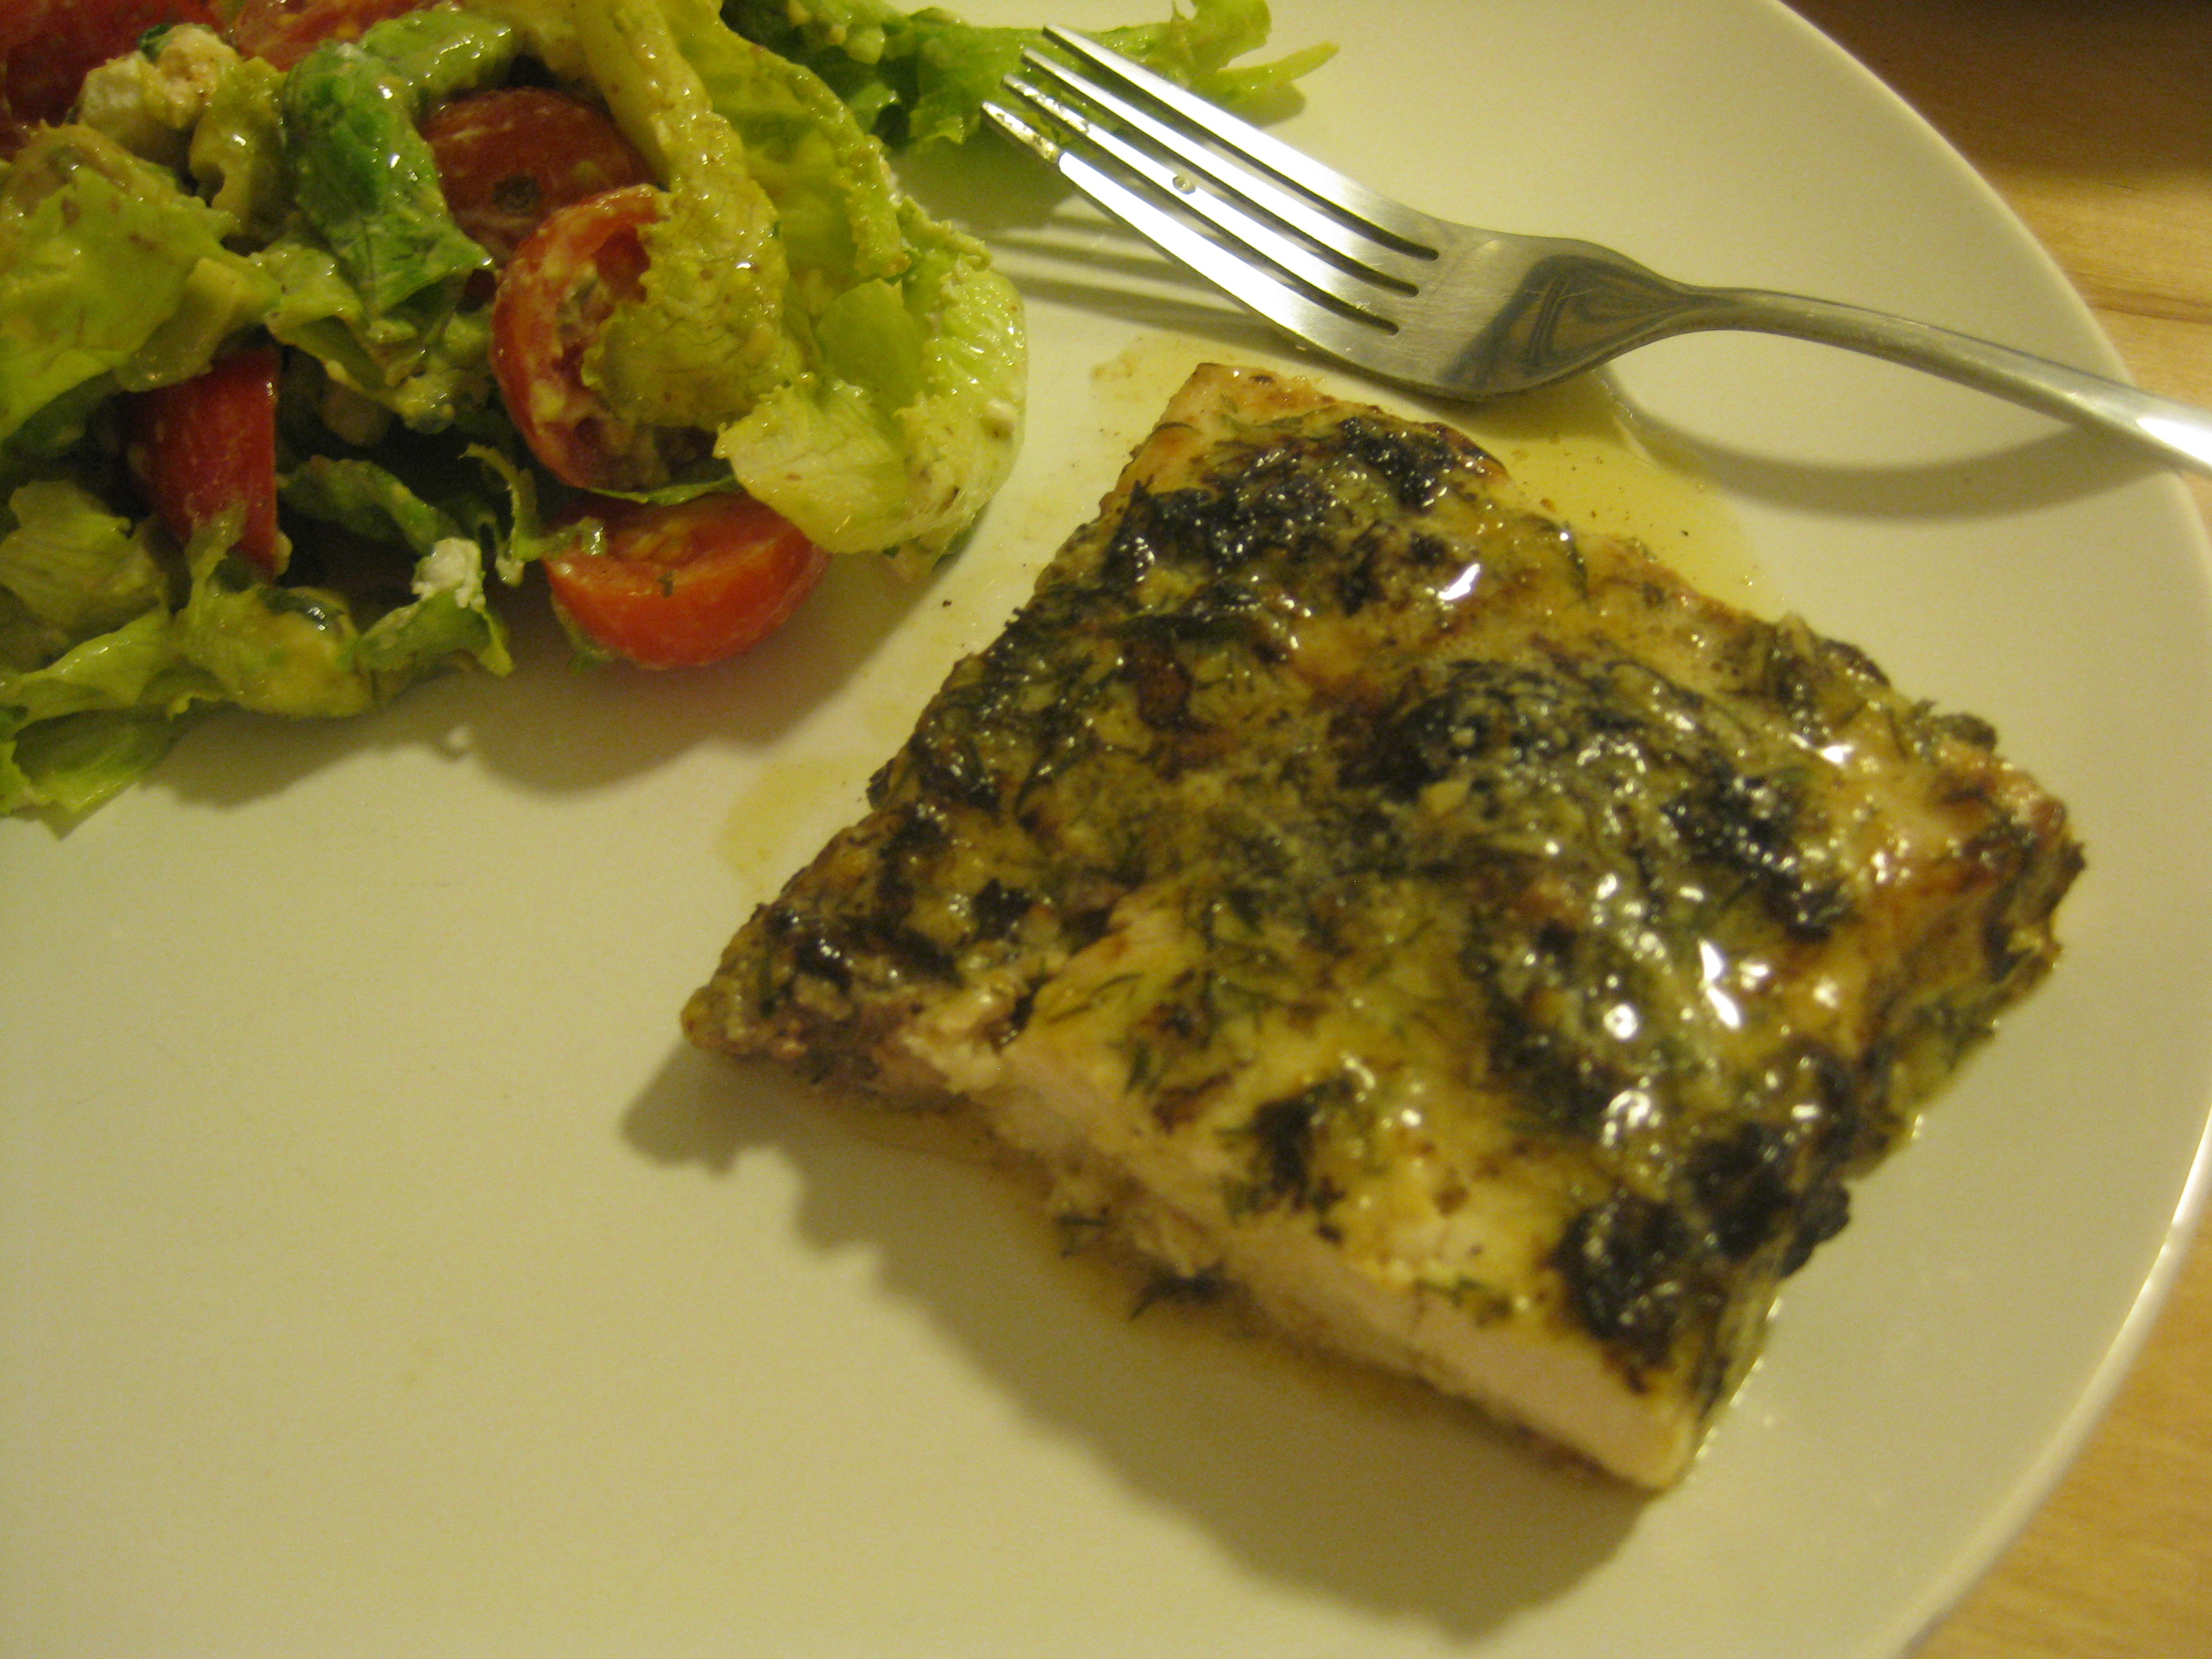 Grilled Swordfish with Lemon Dill Aioli